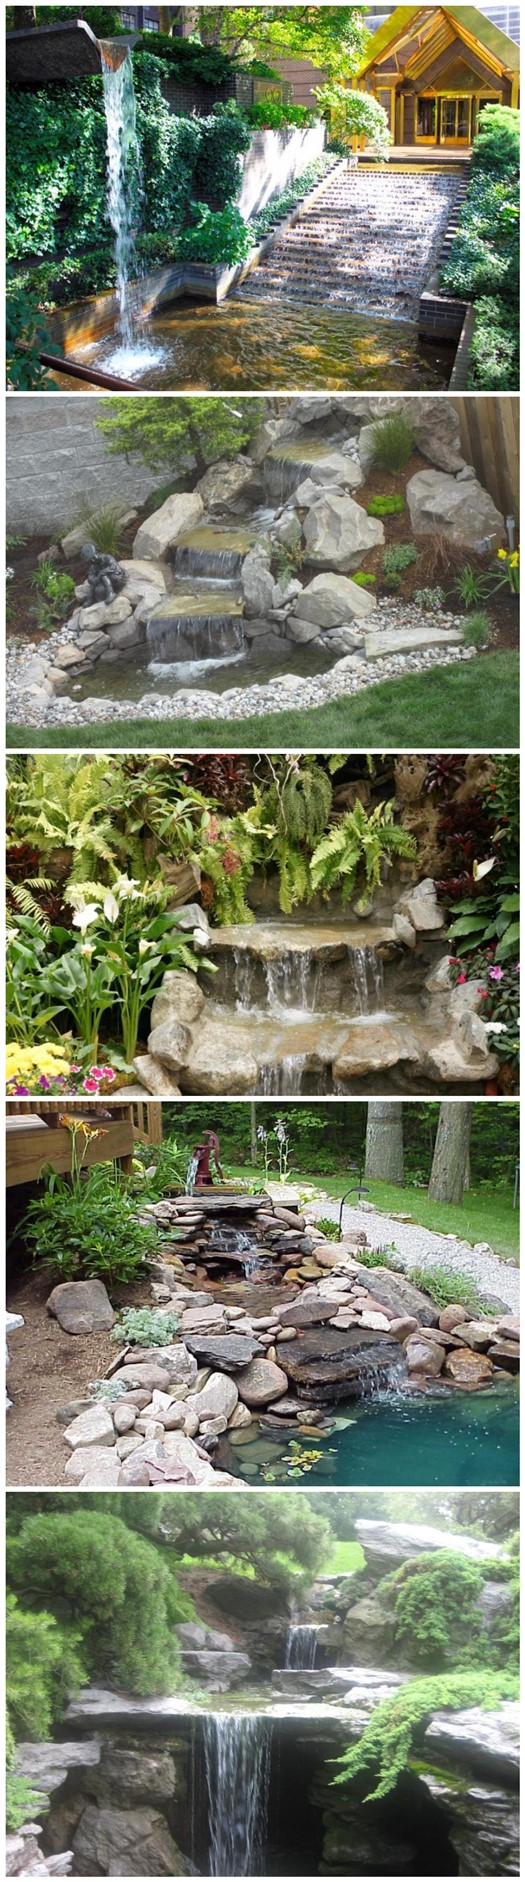 How to build a garden waterfall pond 3 diy tag for Making ponds for a garden